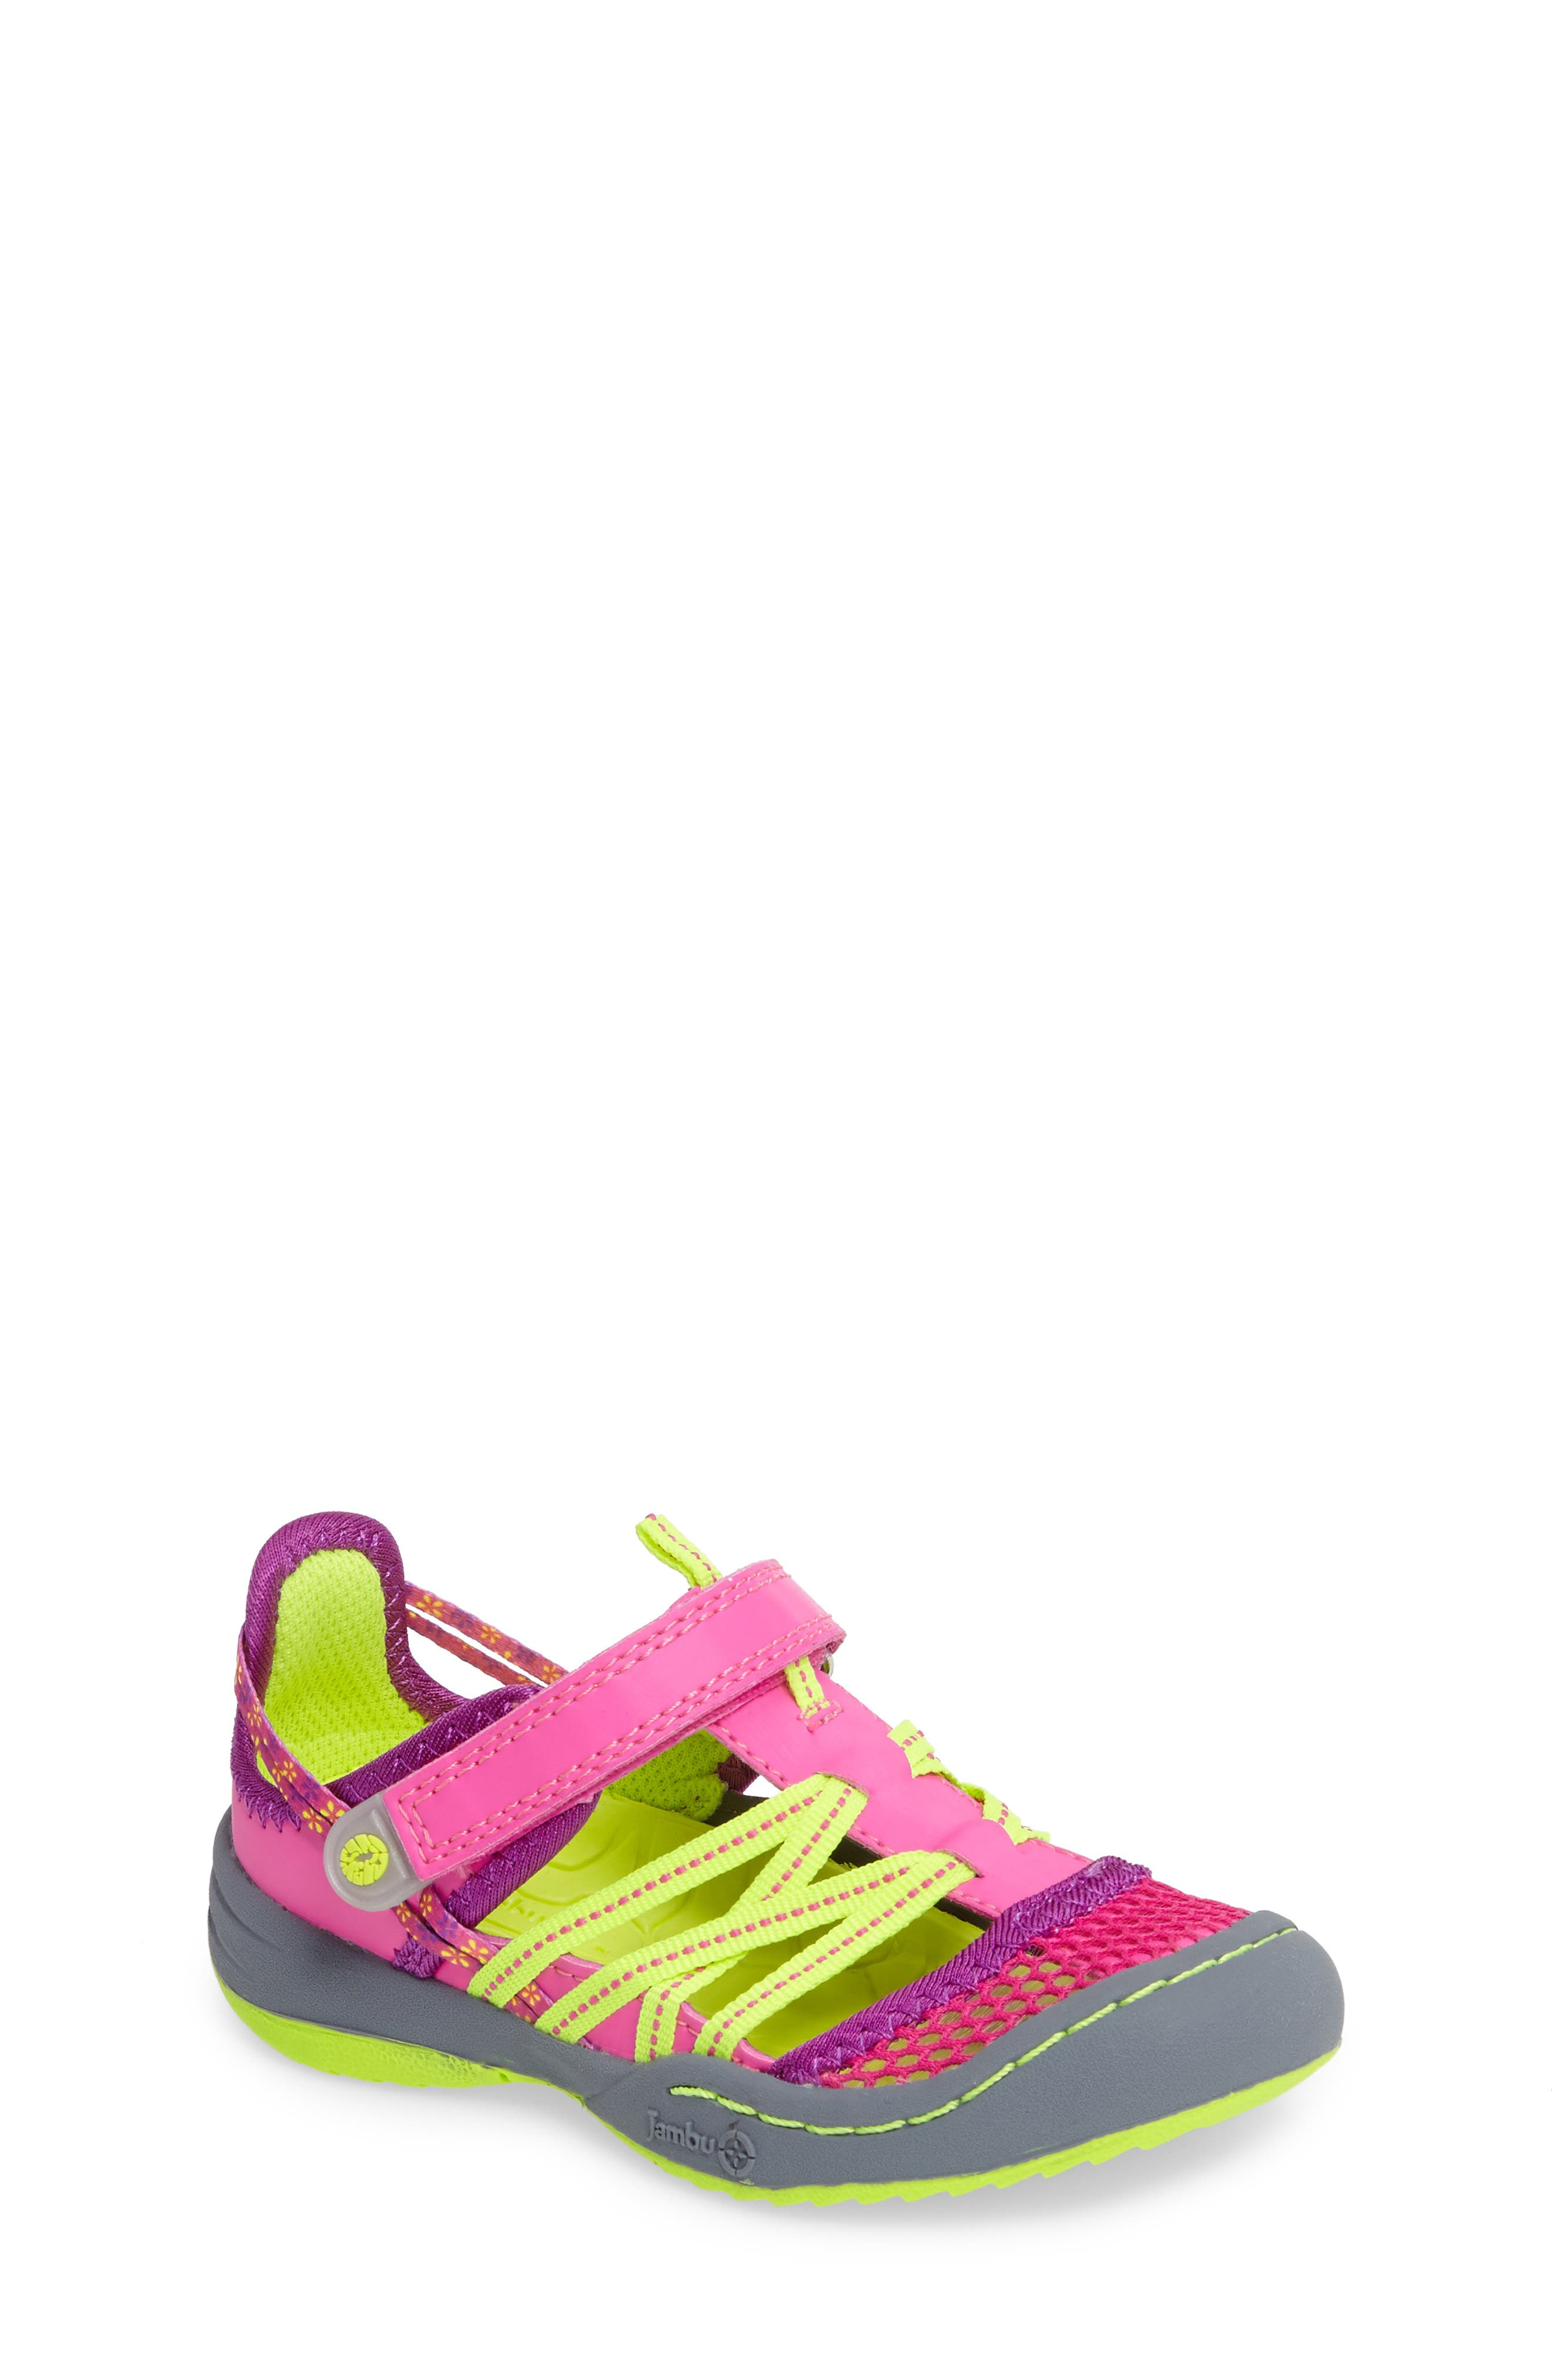 Everly Water Sport Fisherman Sandal,                         Main,                         color, Pink/ Neon